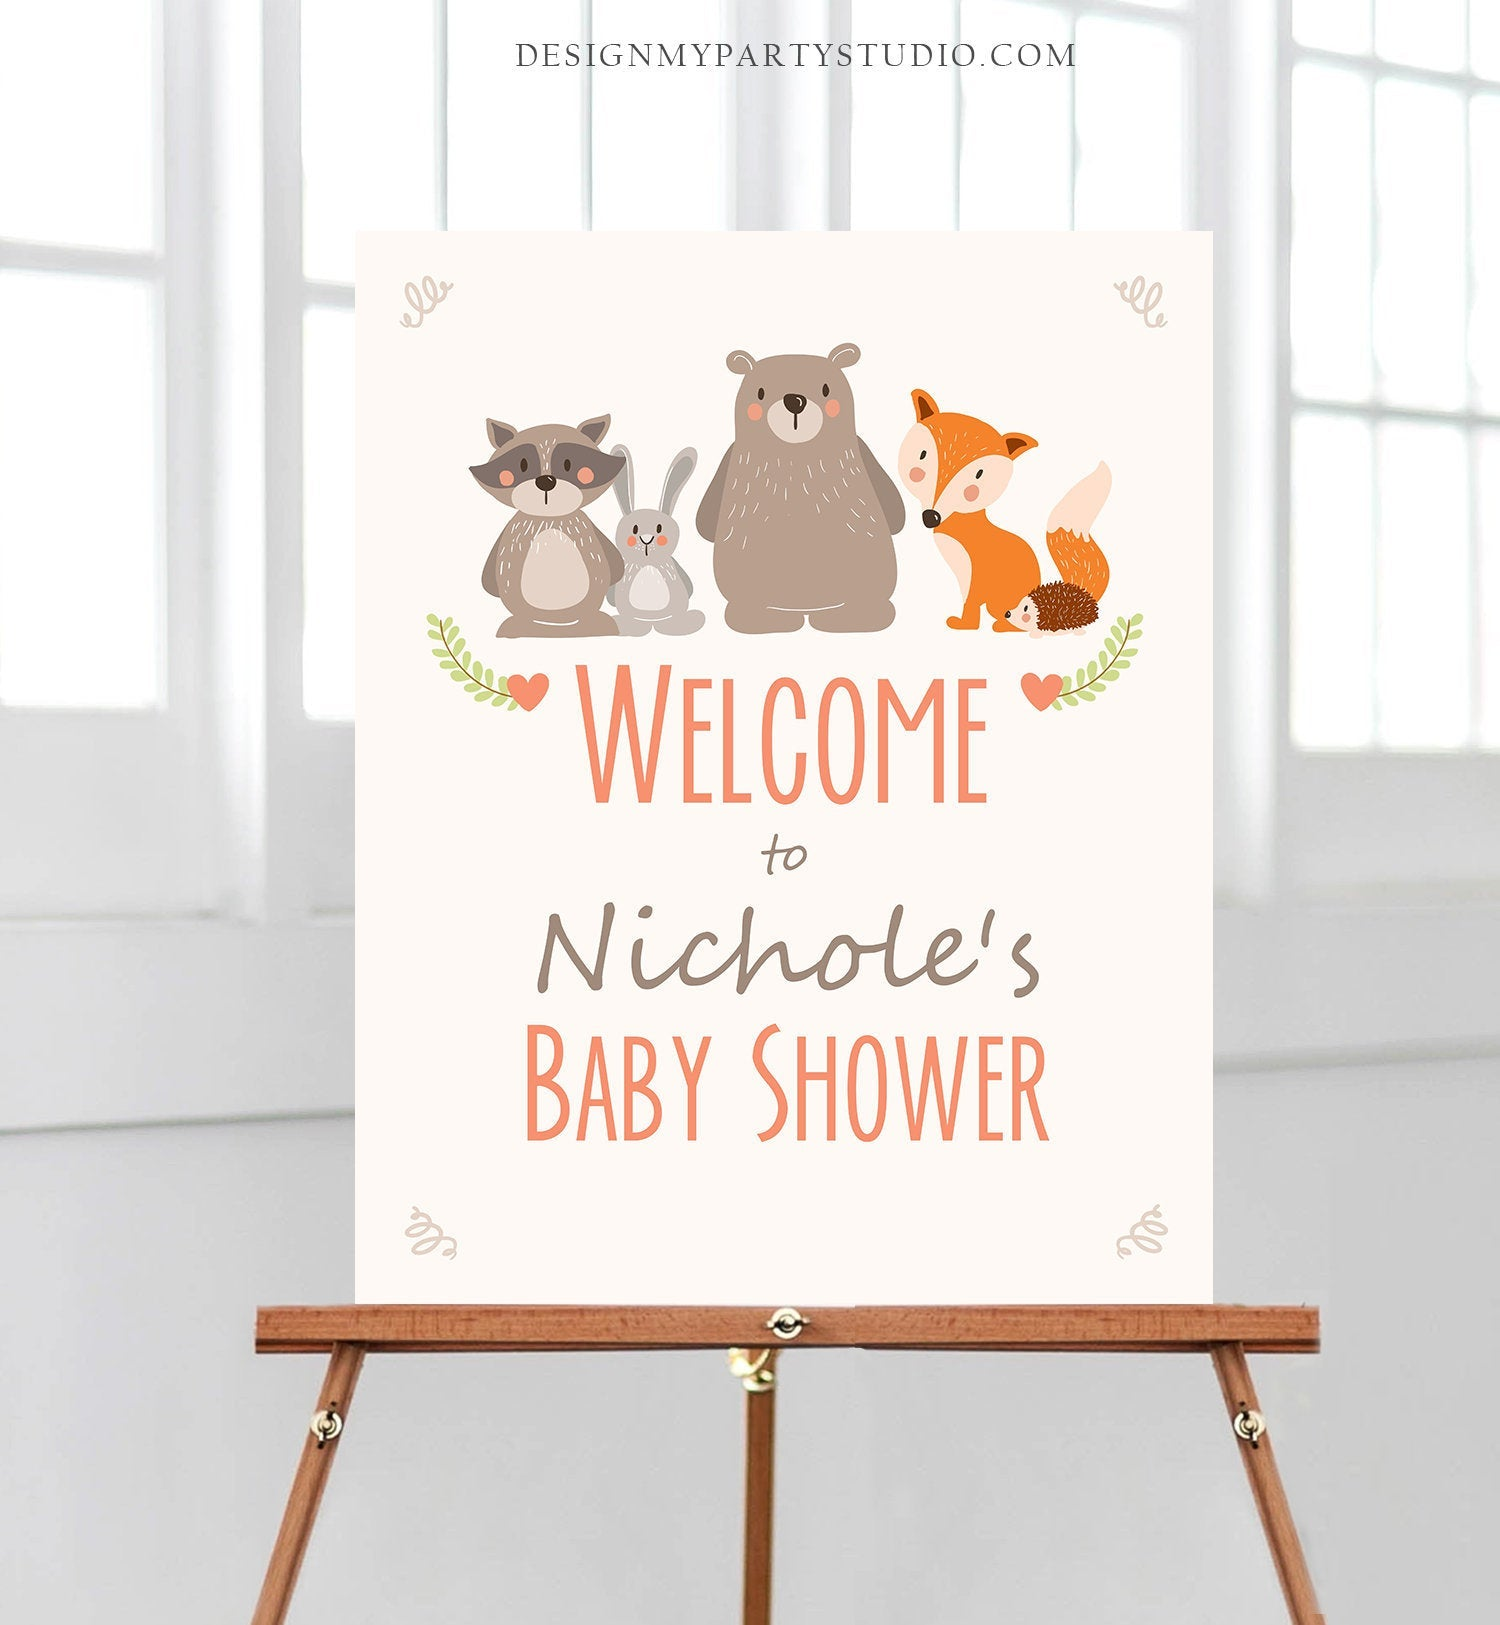 Editable Woodland Welcome Sign Woodland Baby Shower Welcome Sign Rustic Bear Fox Forest Animals Birthday Template PRINTABLE Corjl 0010